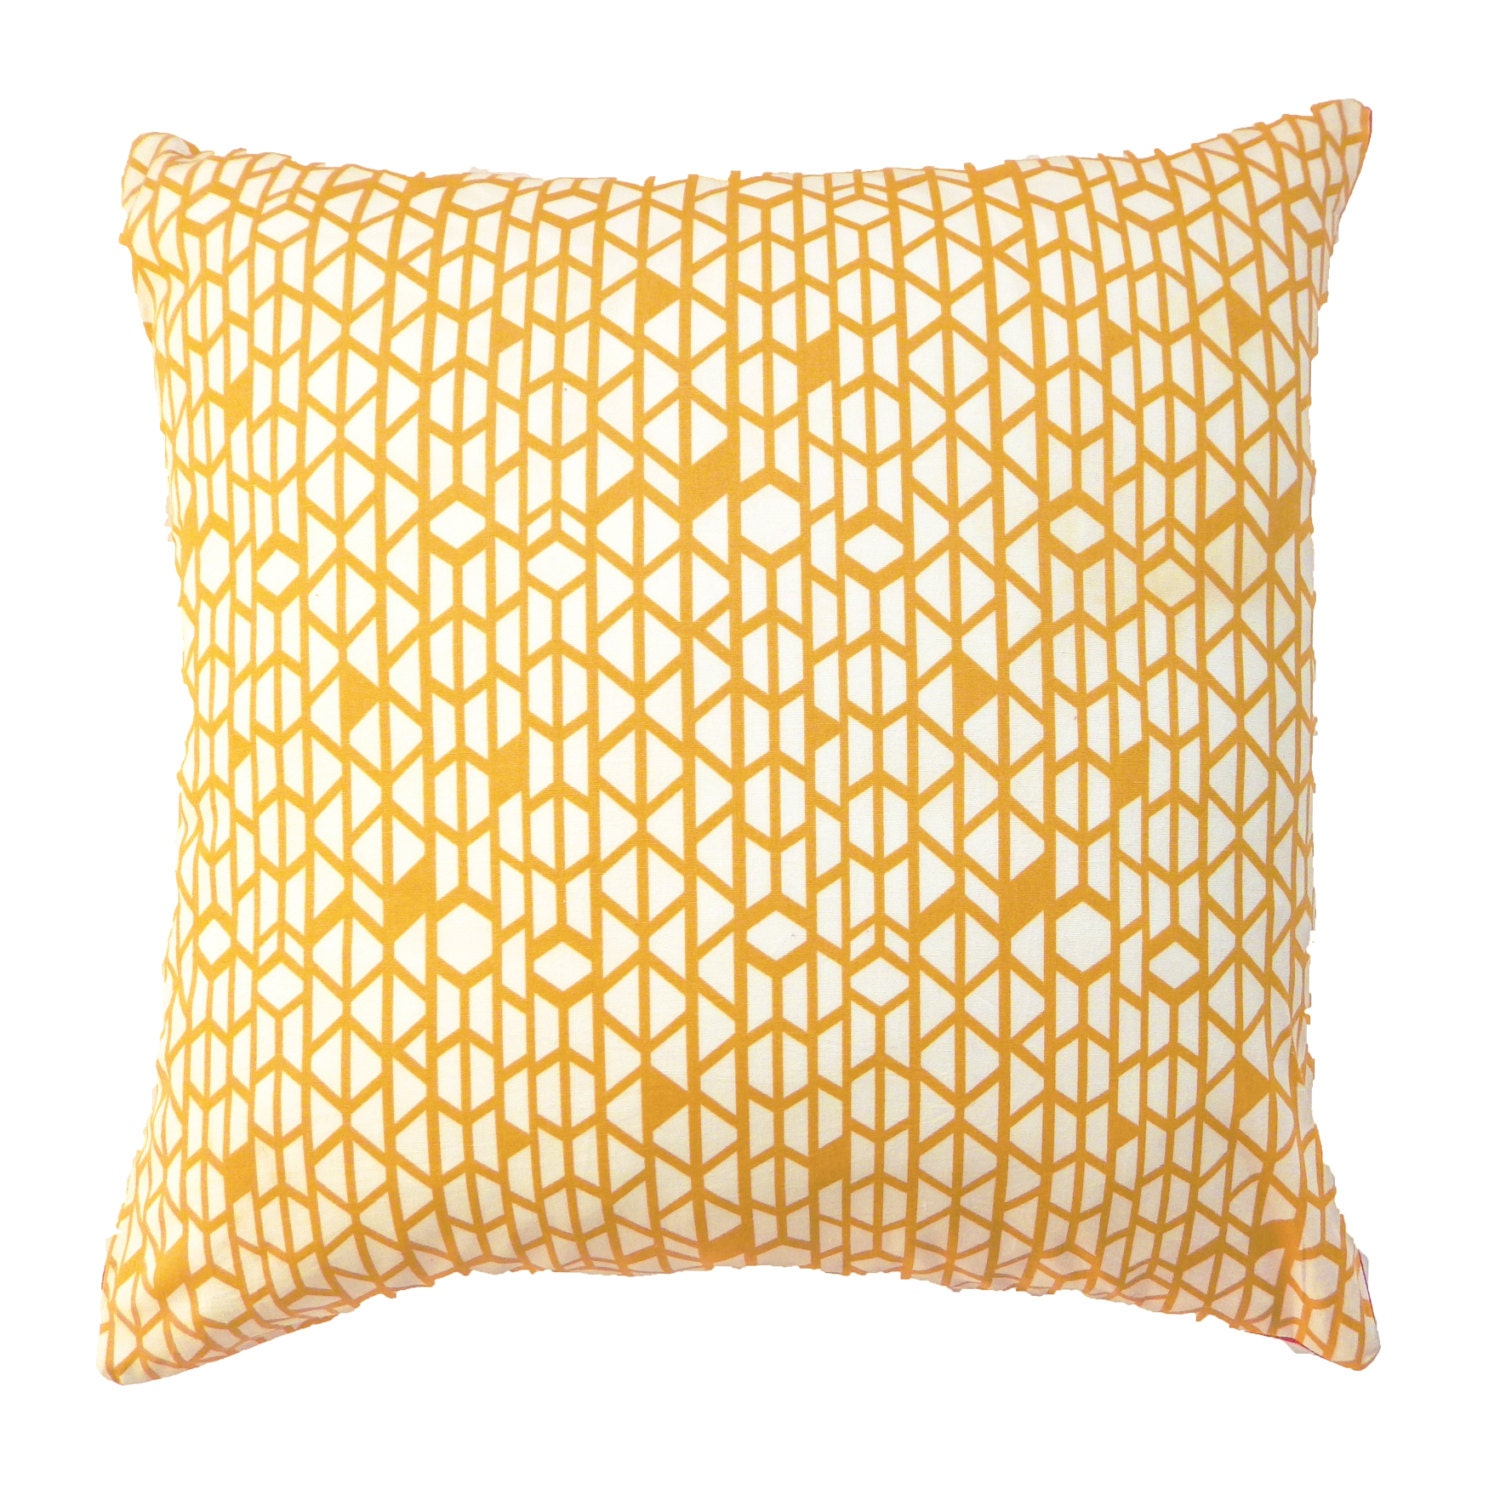 Scandinavian Design Throw Pillows : Geometric Print Cushion Cover Scandinavian by MirraDesignStudio